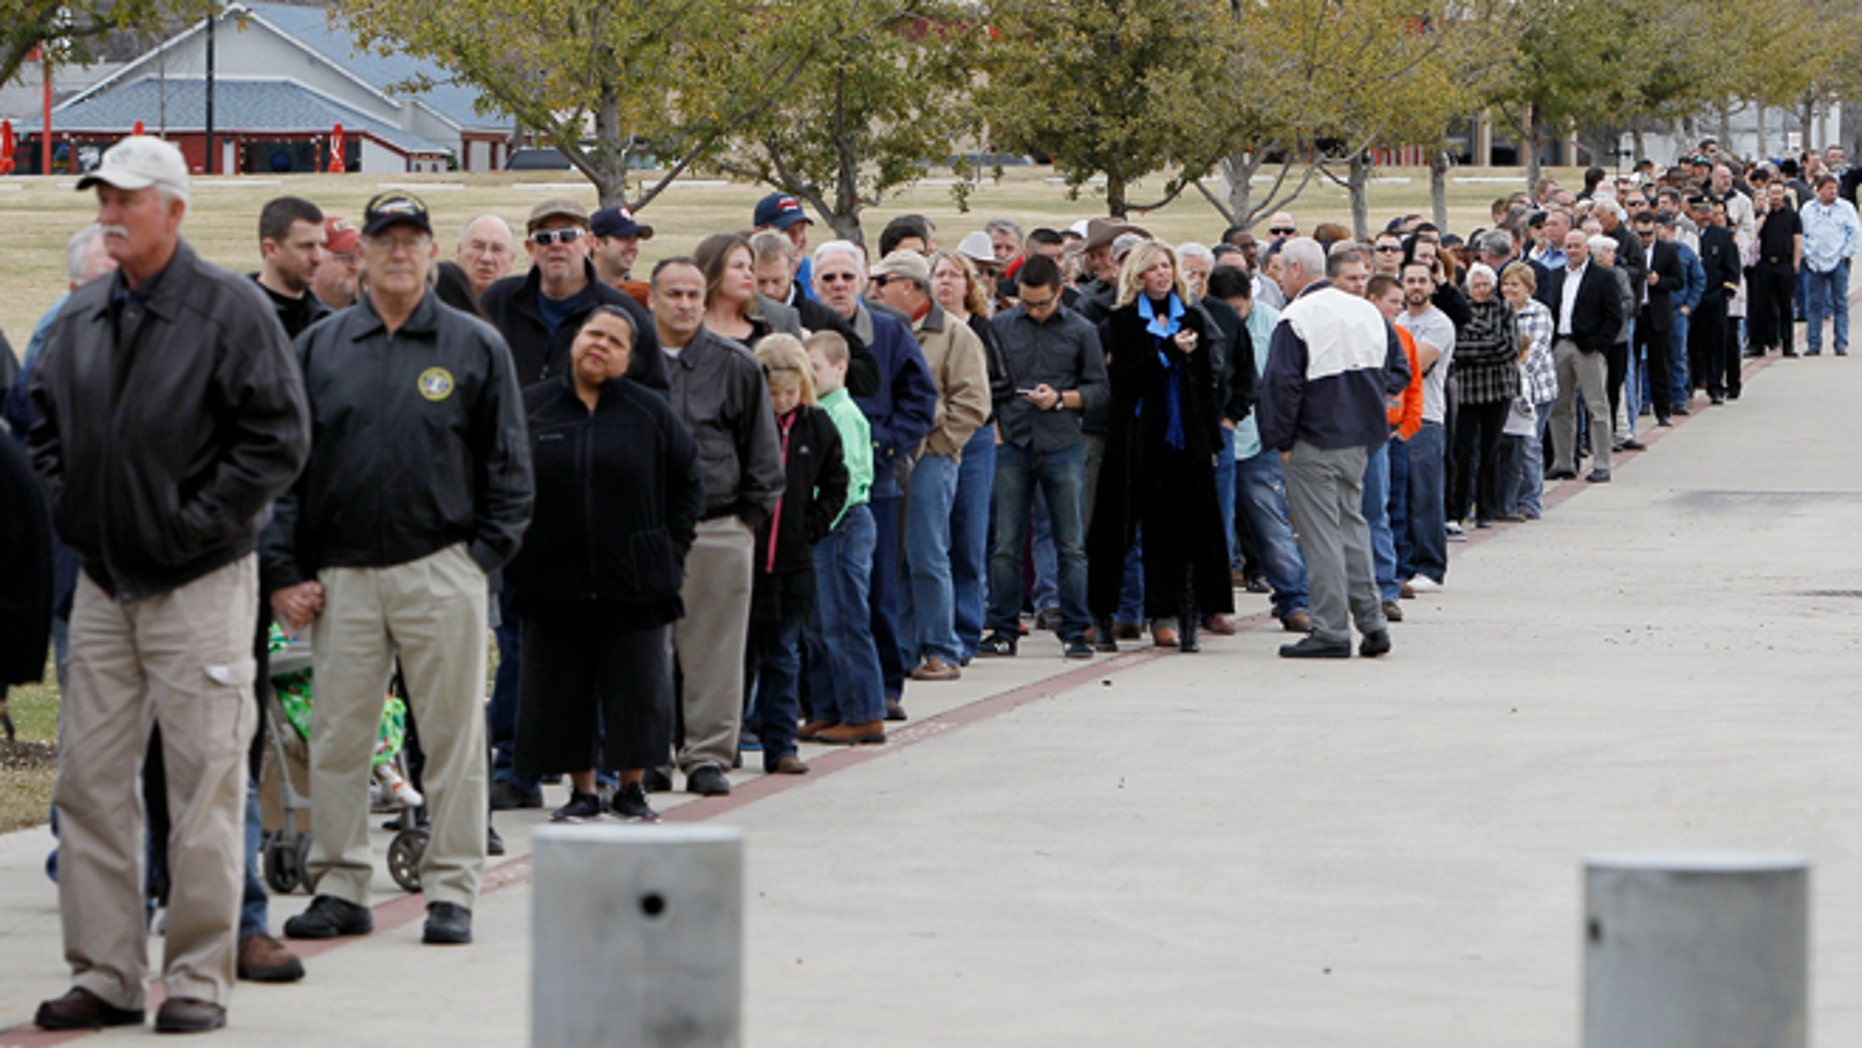 Feb. 11, 2013: People wait in line to attend a memorial service for Christopher Kyle at Cowboys Stadium in Arlington, Texas.